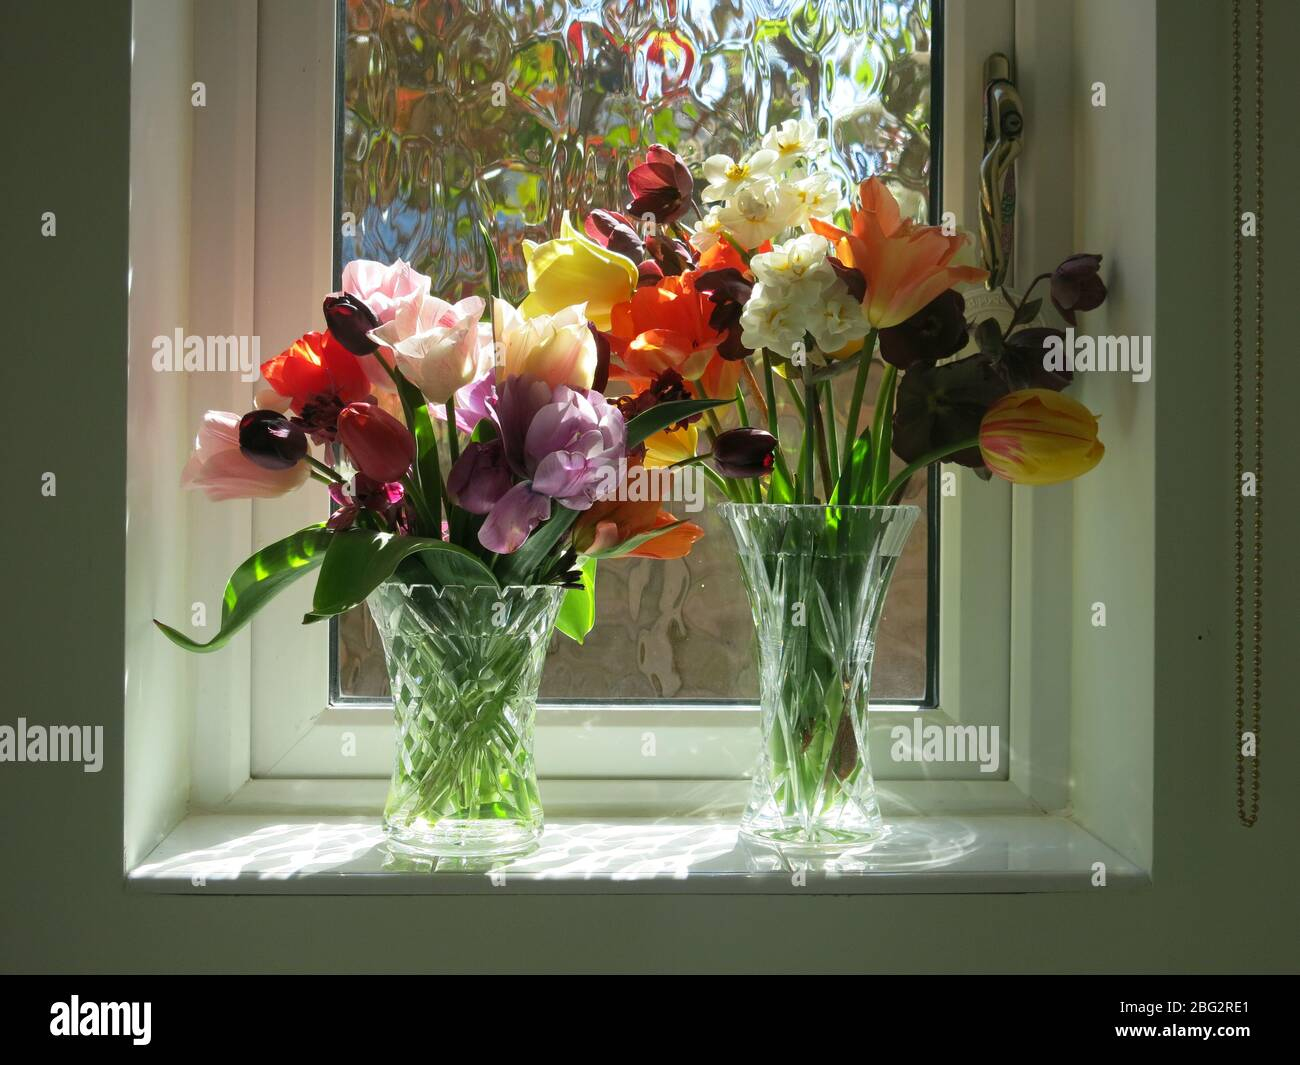 Two Glass Vases On A Sunny Bathroom Windowsill Are Filled With Spring Tulips And Provide A Cheery Colourful Flower Arrangement Stock Photo Alamy